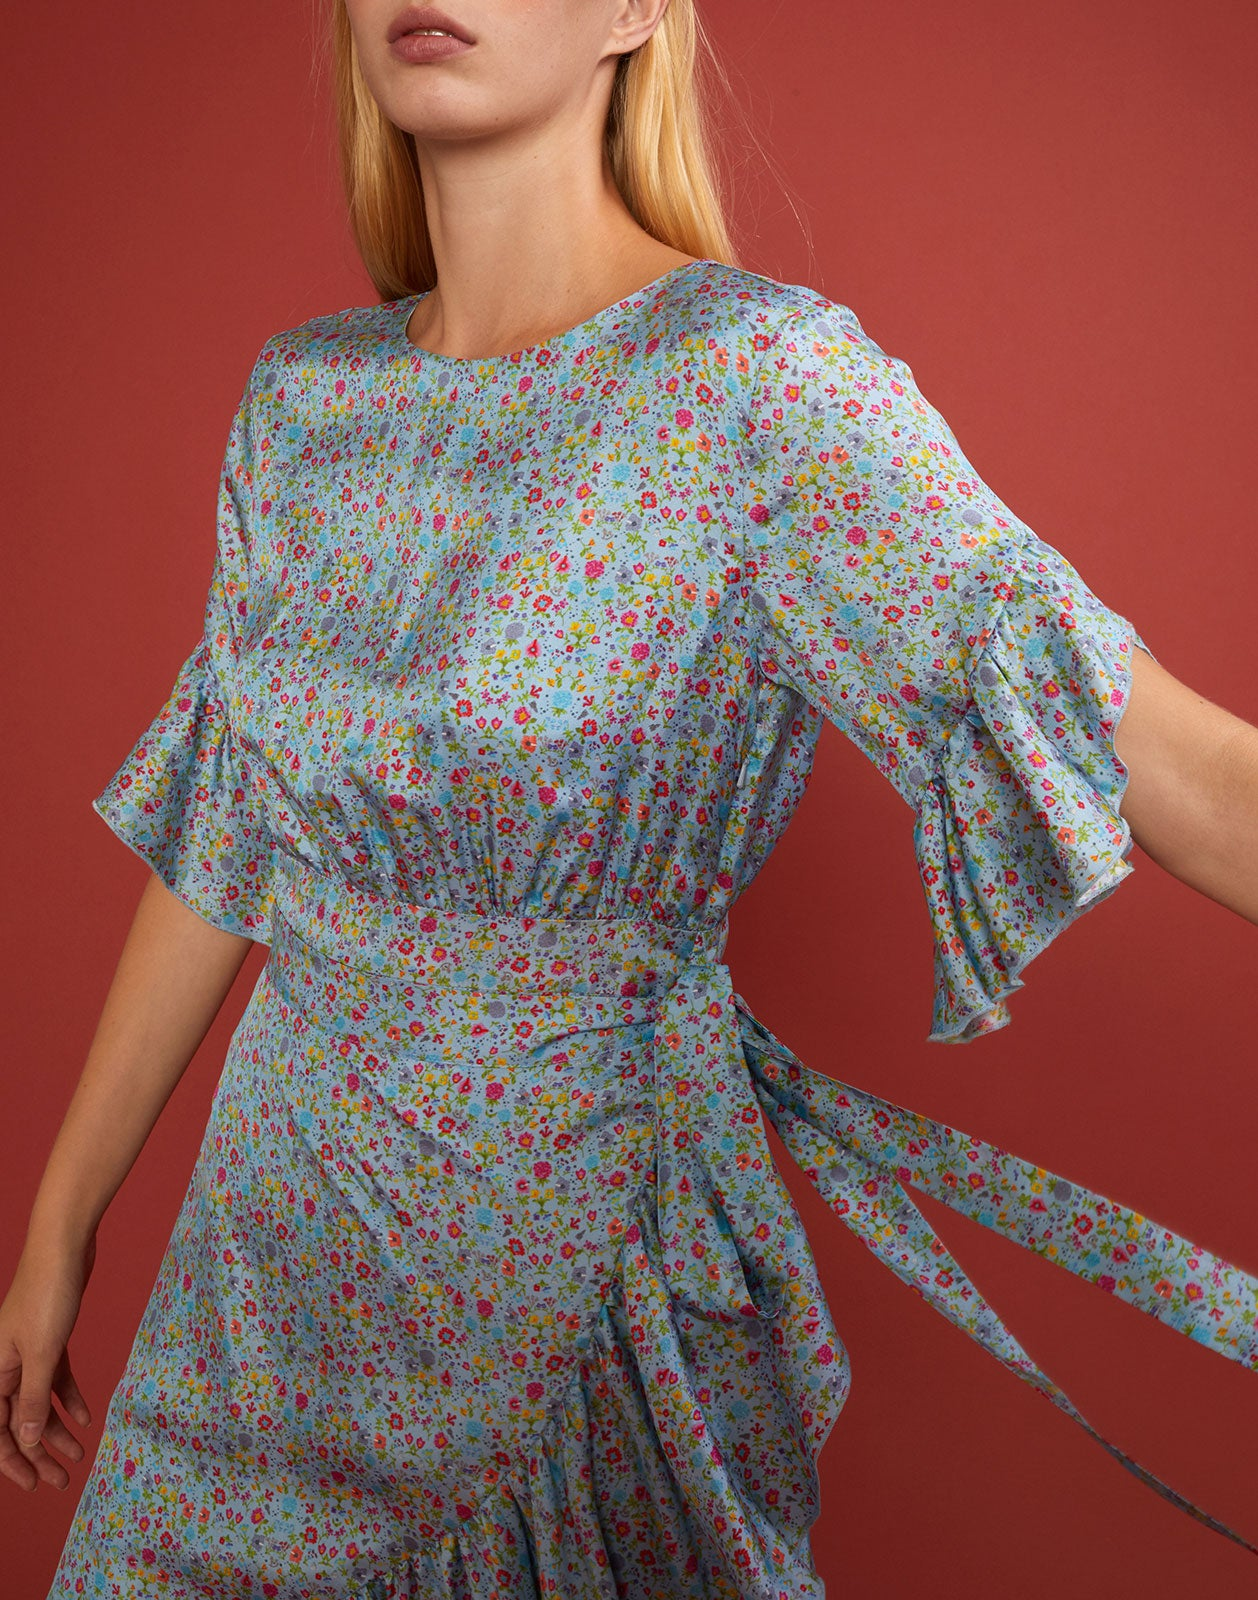 Front detail view of the sky floral wallflower wrap dress.